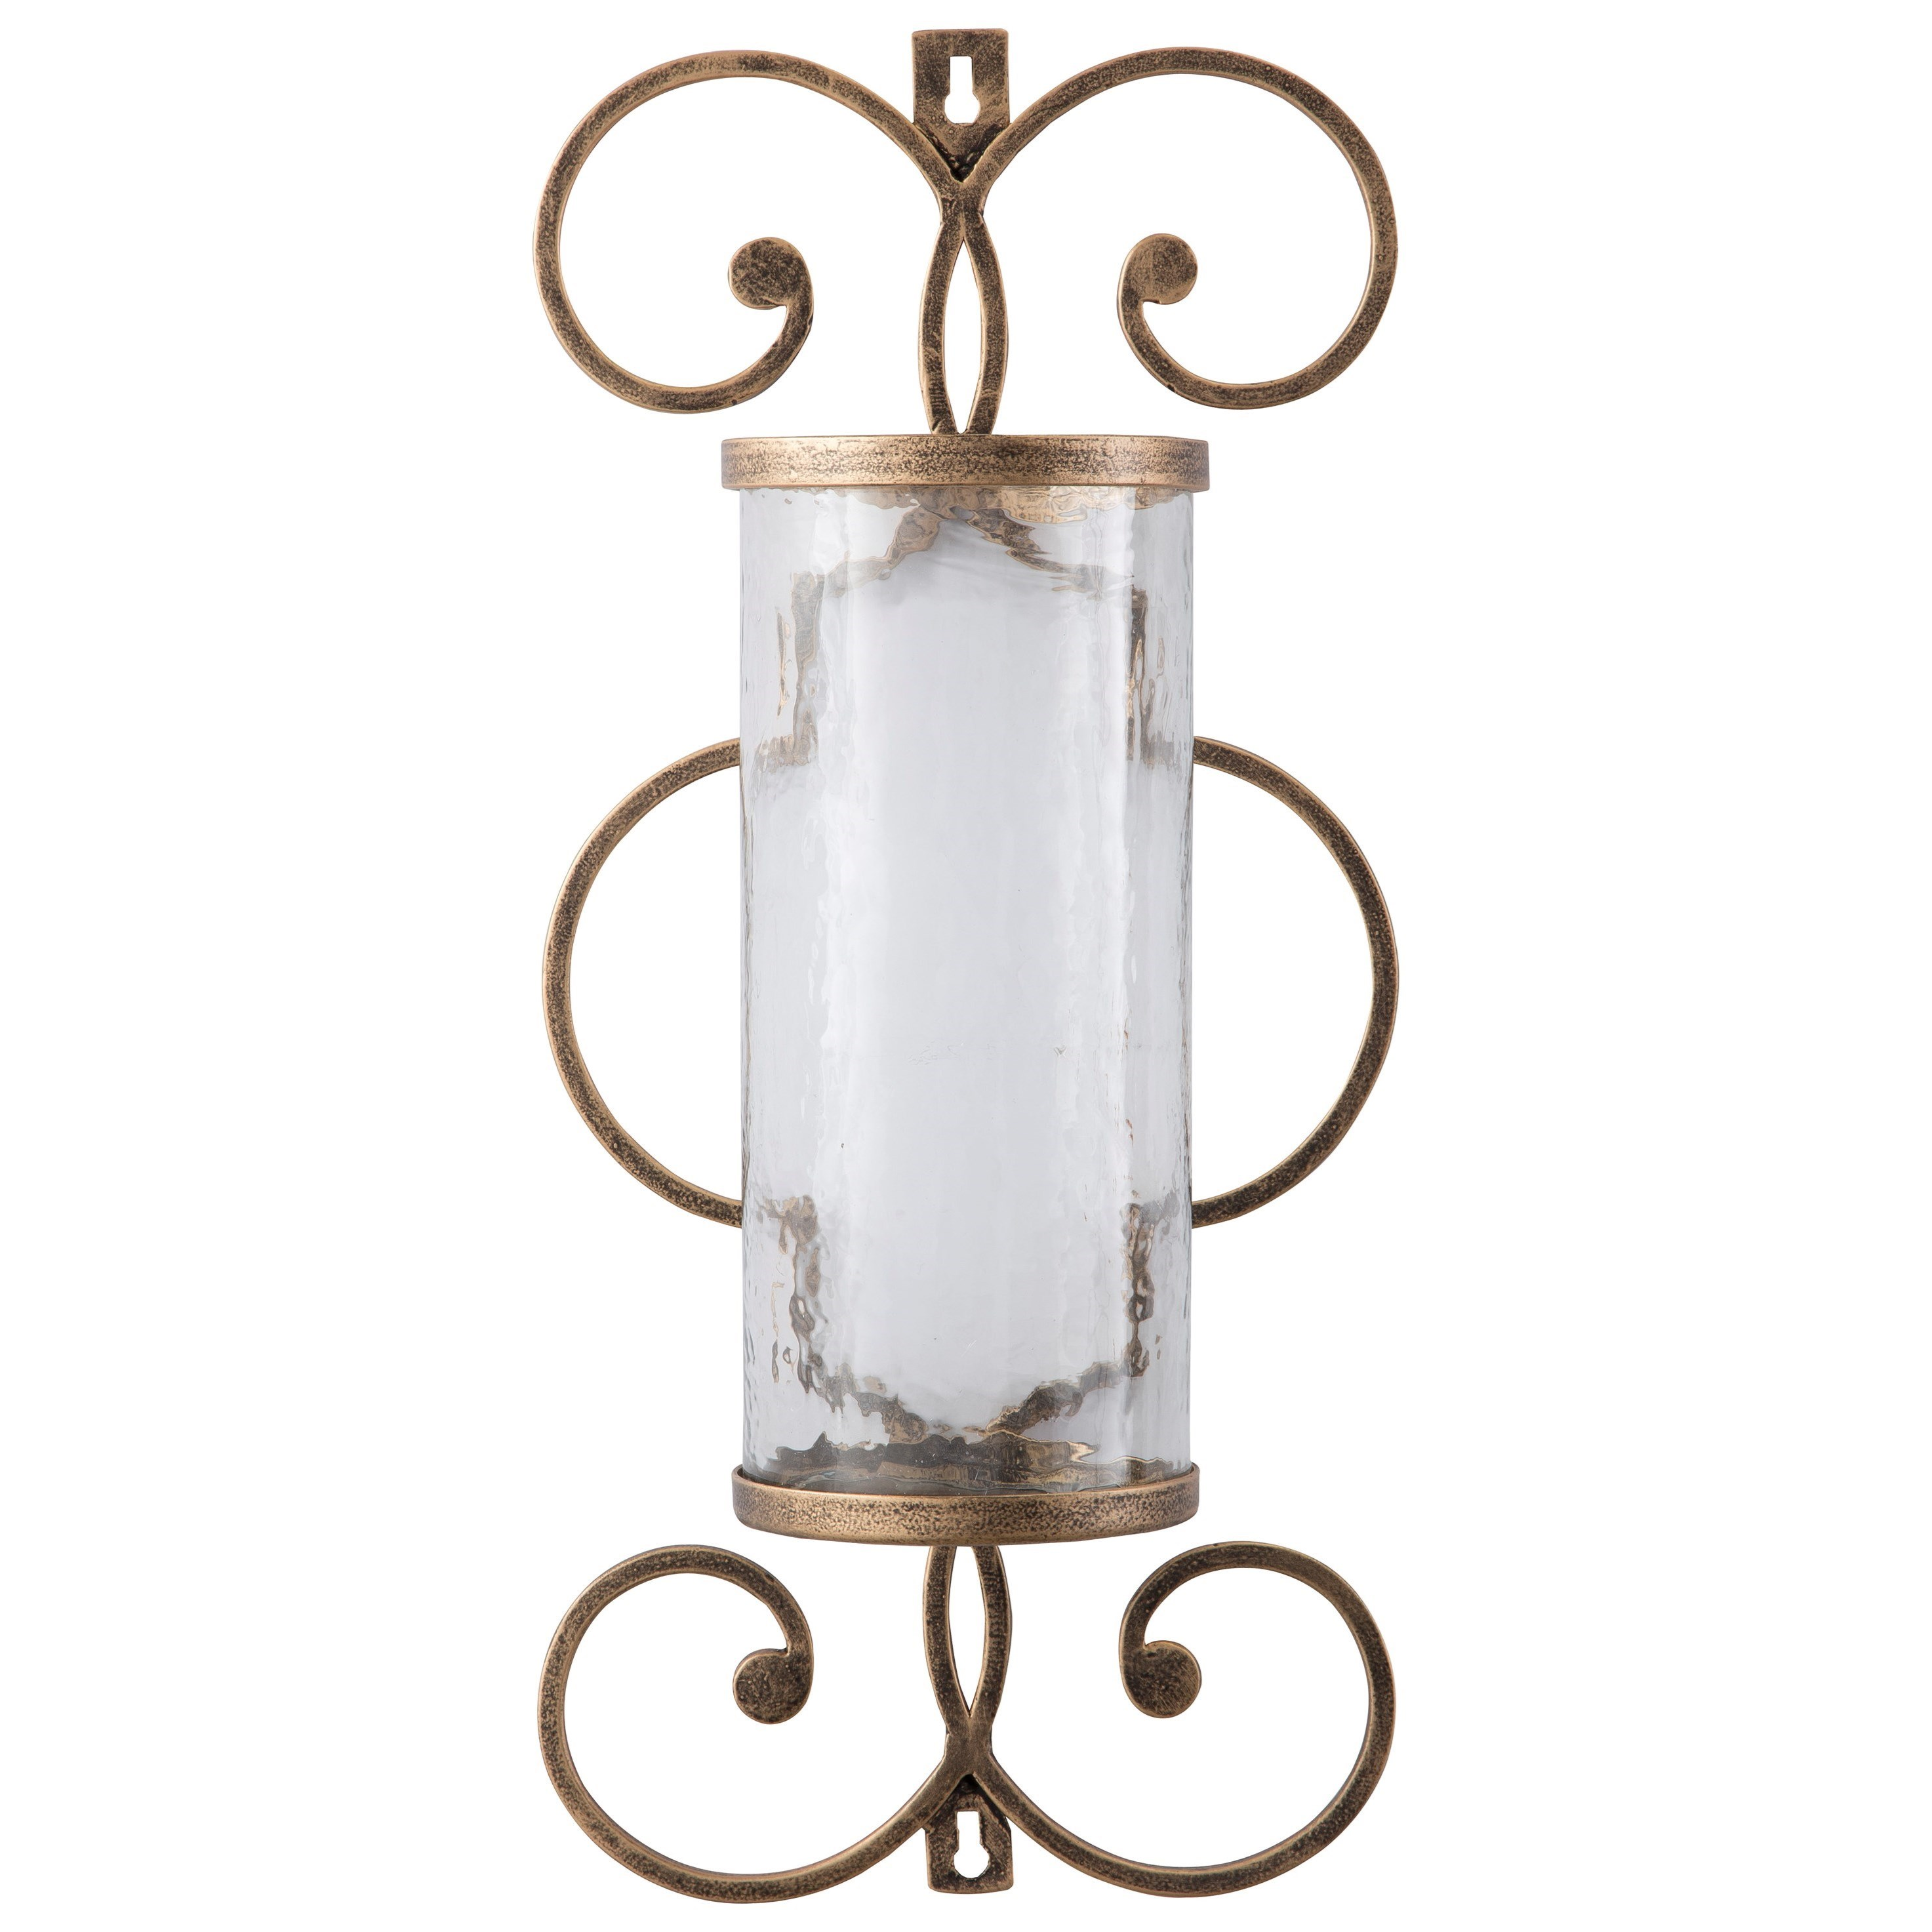 Signature Design by Ashley Wall Art Oenone Antique Gold Finish Wall Sconce - Item Number: A8010038